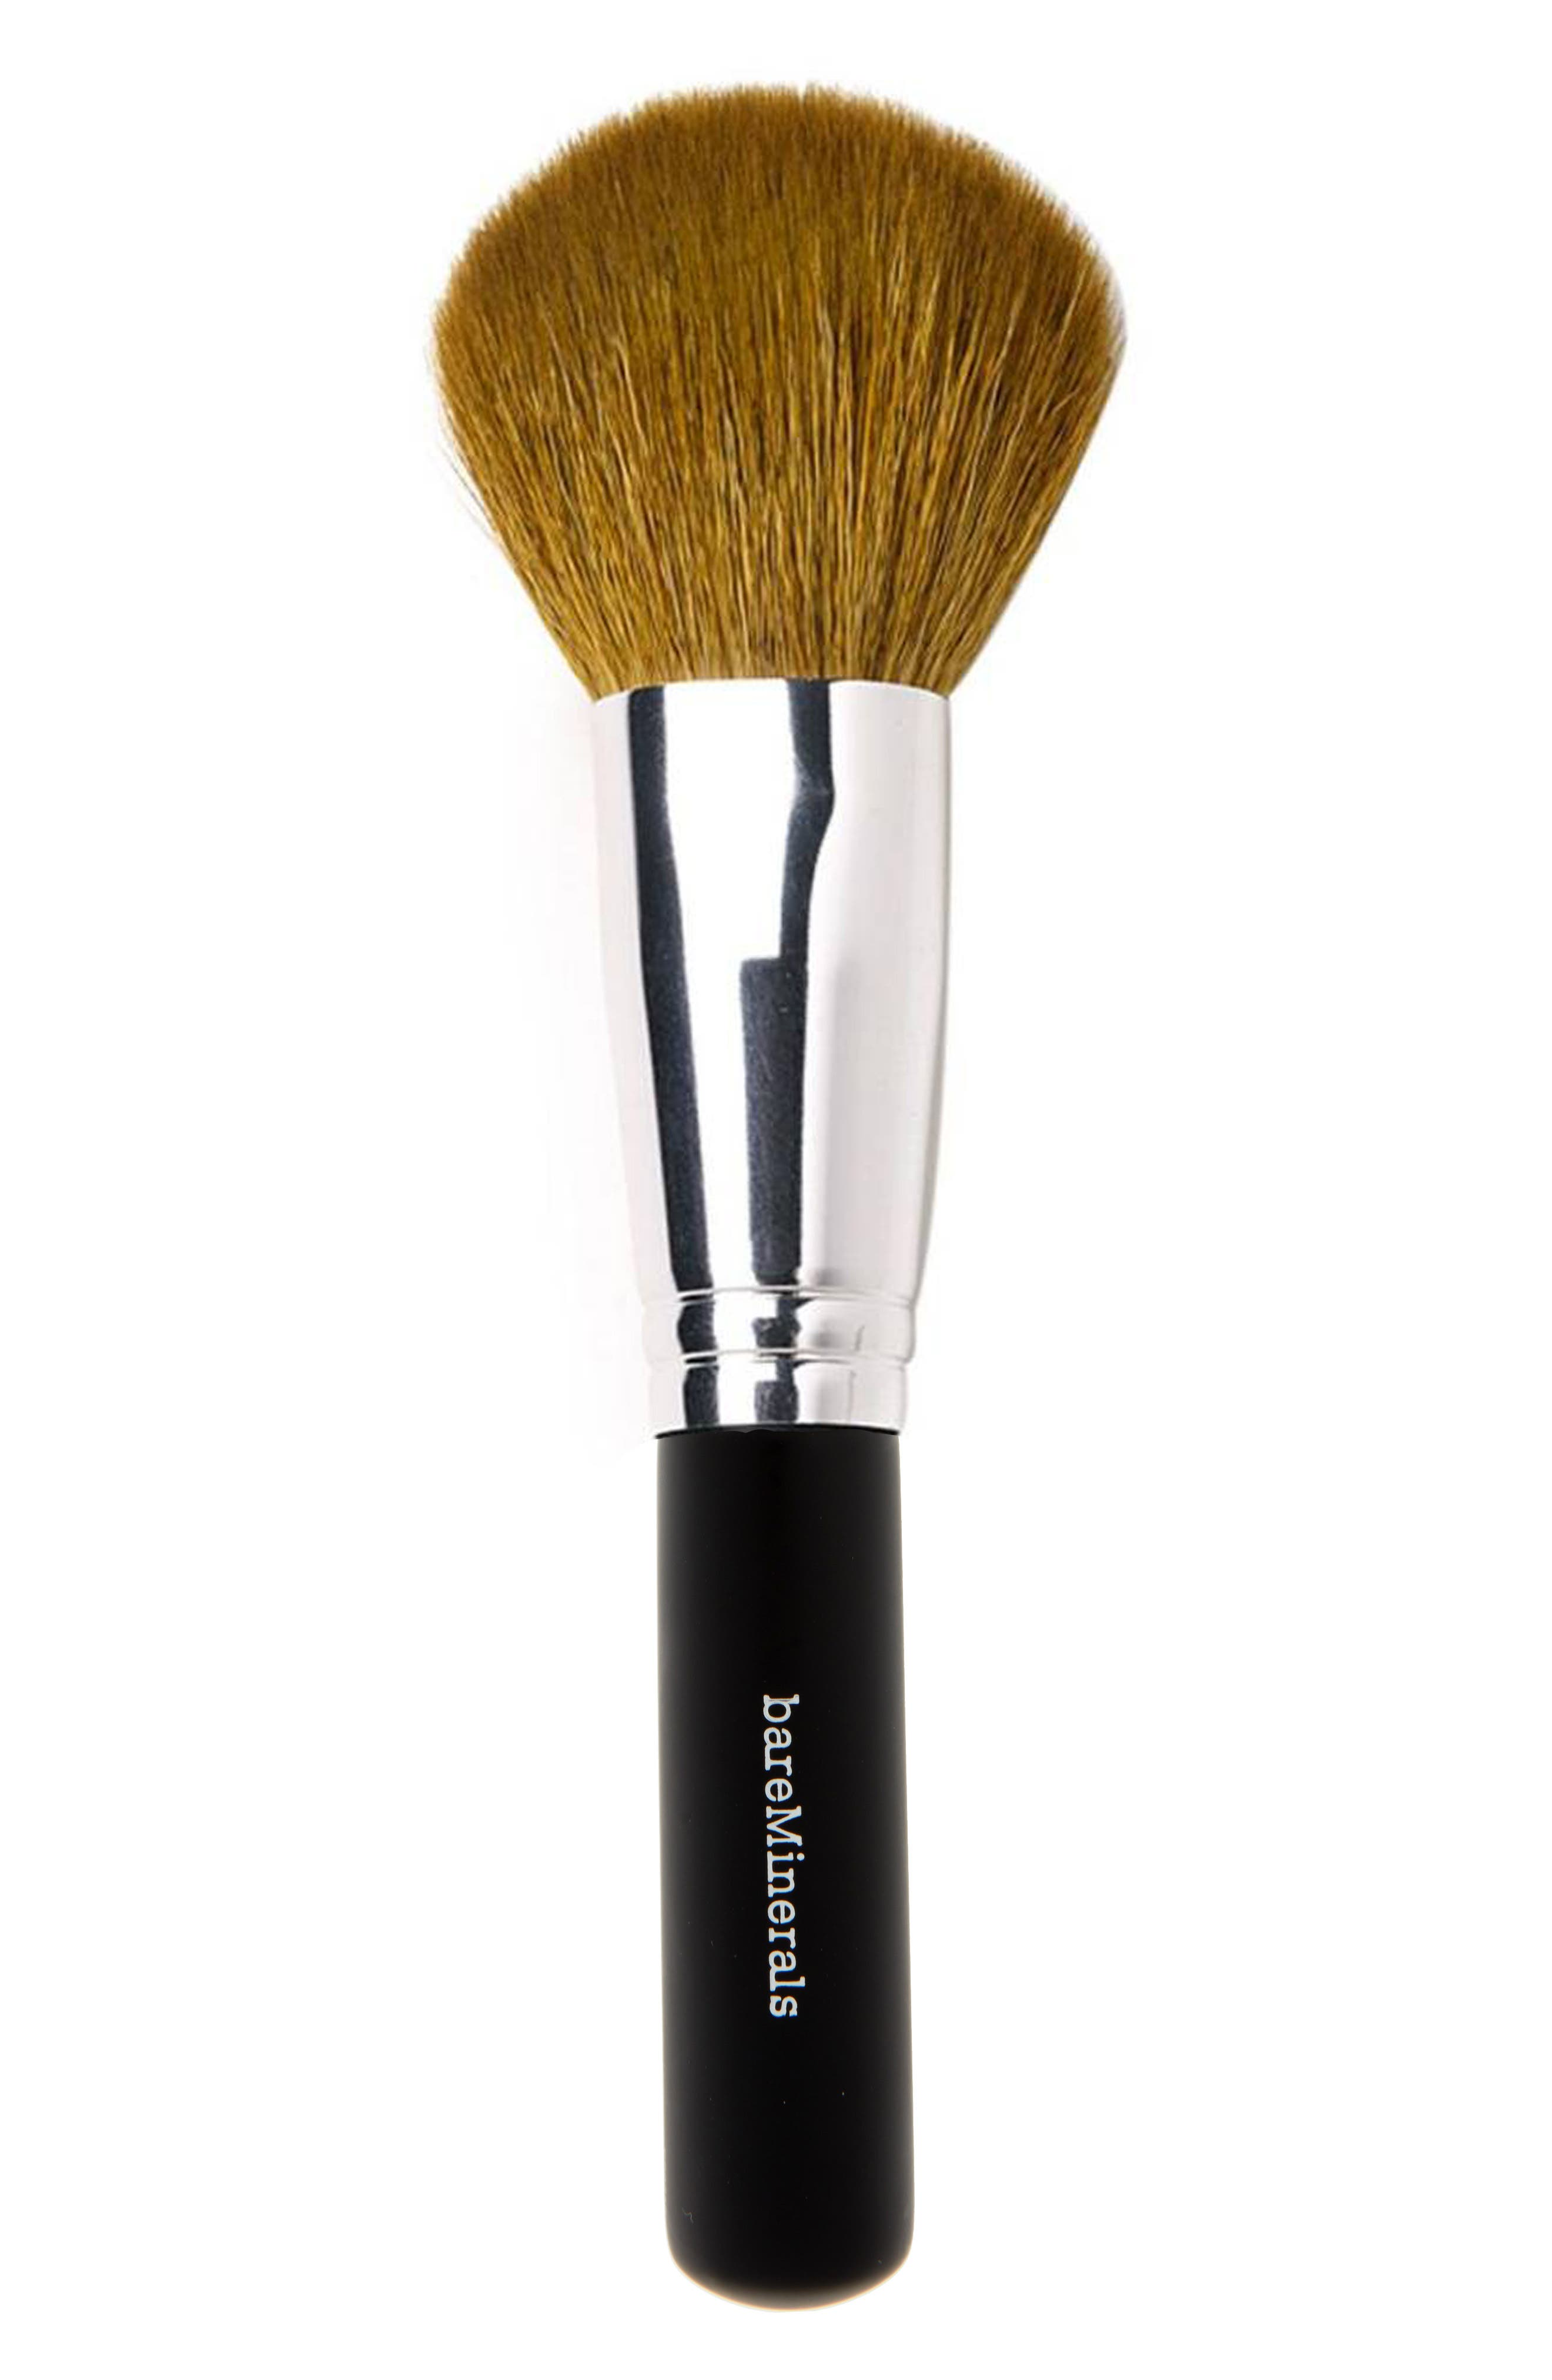 What it is: A natural-hair face brush with a full, tapered head that provides medium-to-full coverage. What it does: Ideal for use with foundation, blush, bronzer, highlighter or setting and finishing powder, this brush delivers buildable coverage when applied in broad, sweeping strokes all over the face. With natural fibers chosen for their quality, the semi-round brush shape makes it unbelievably versatile and a go-to for every complexion